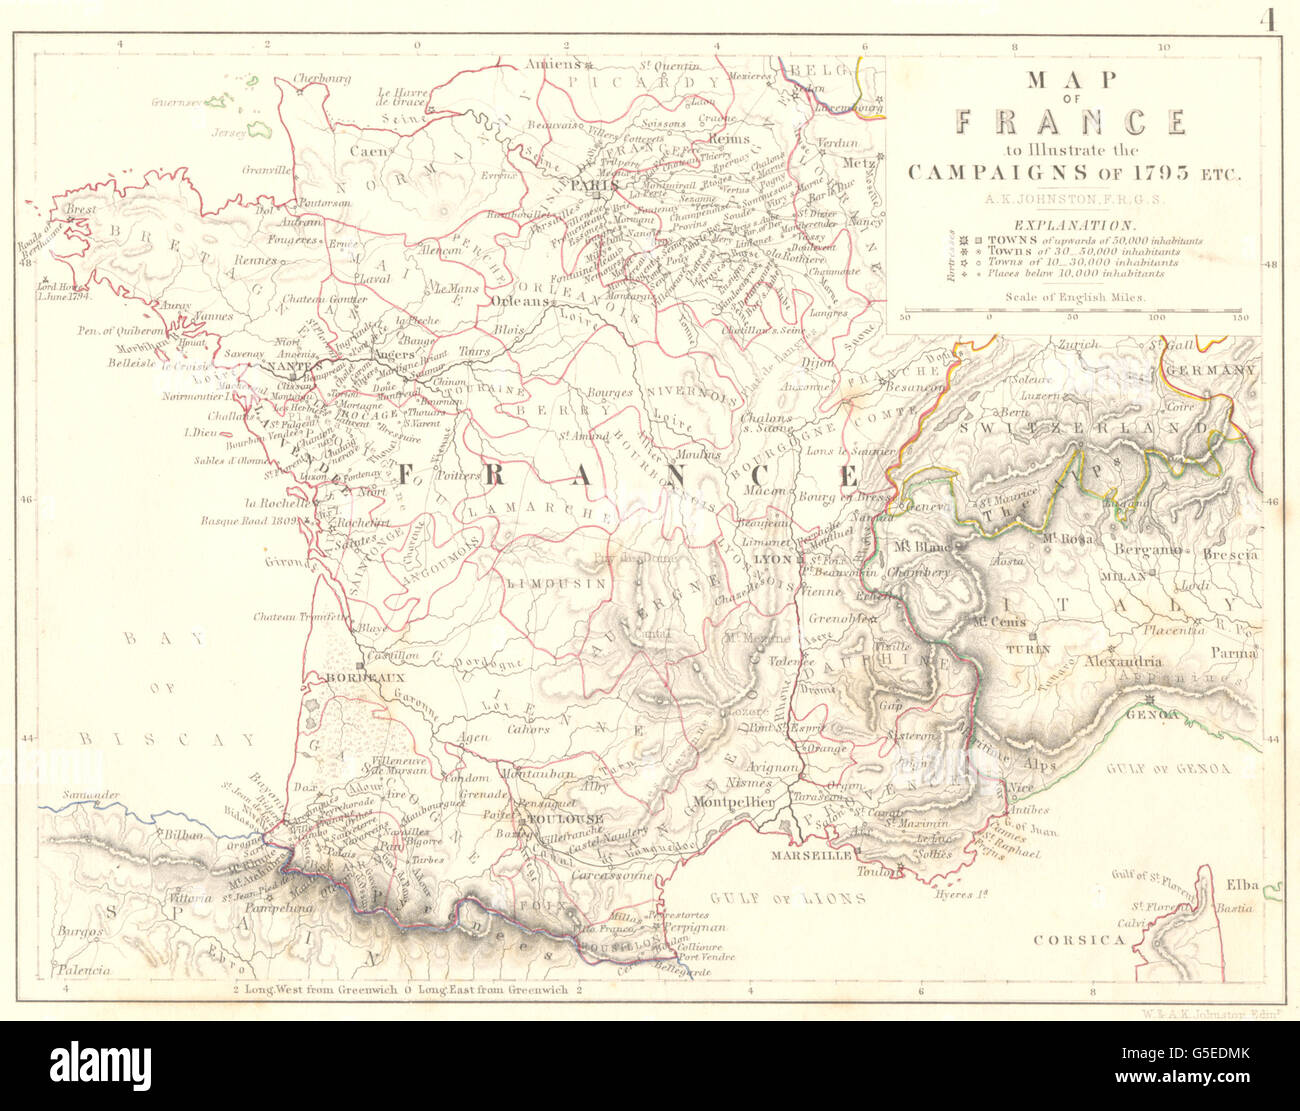 FRANCE: Map of France to illustrate the Campaigns of 1795 etc, 1848 - Stock Image